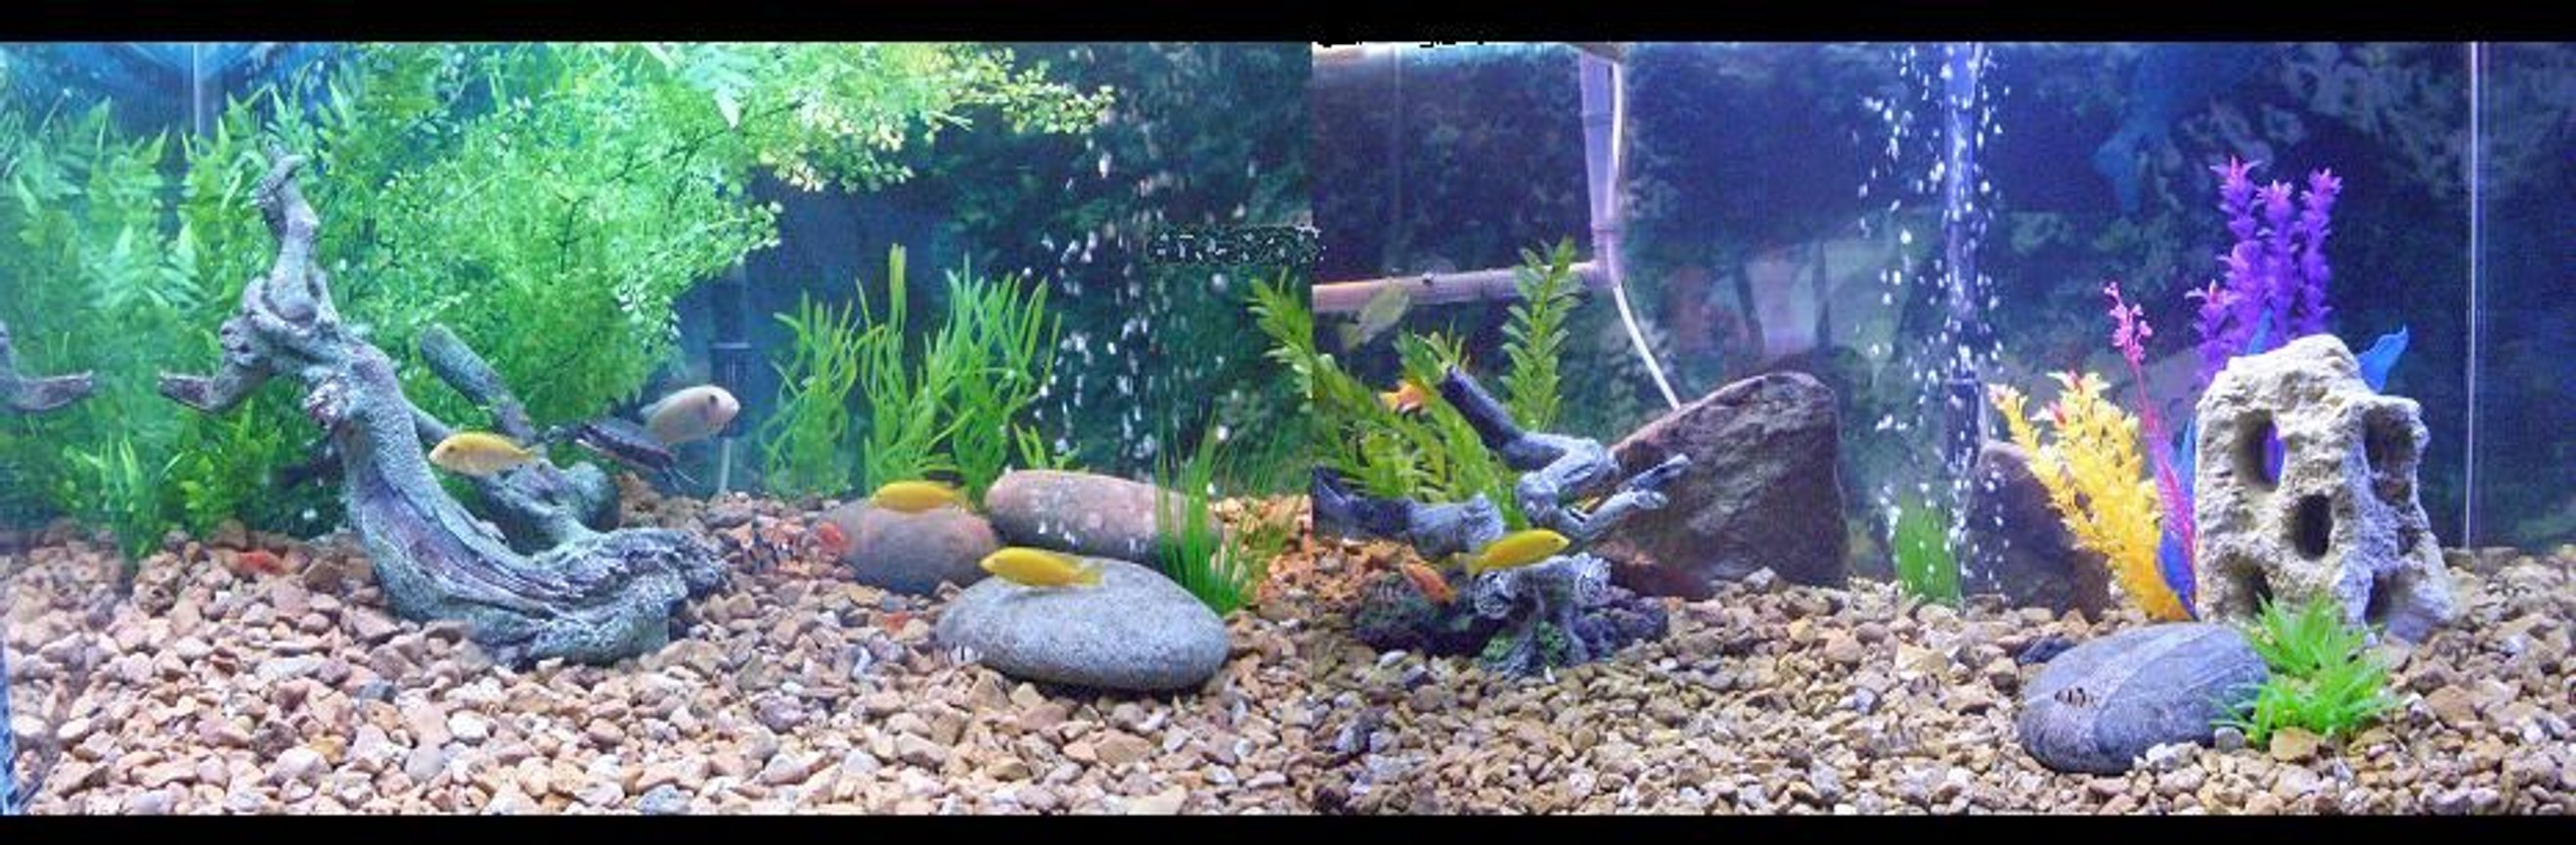 225 gallons freshwater fish tank (mostly fish and non-living decorations) - 225 gallon fish/turtle tank